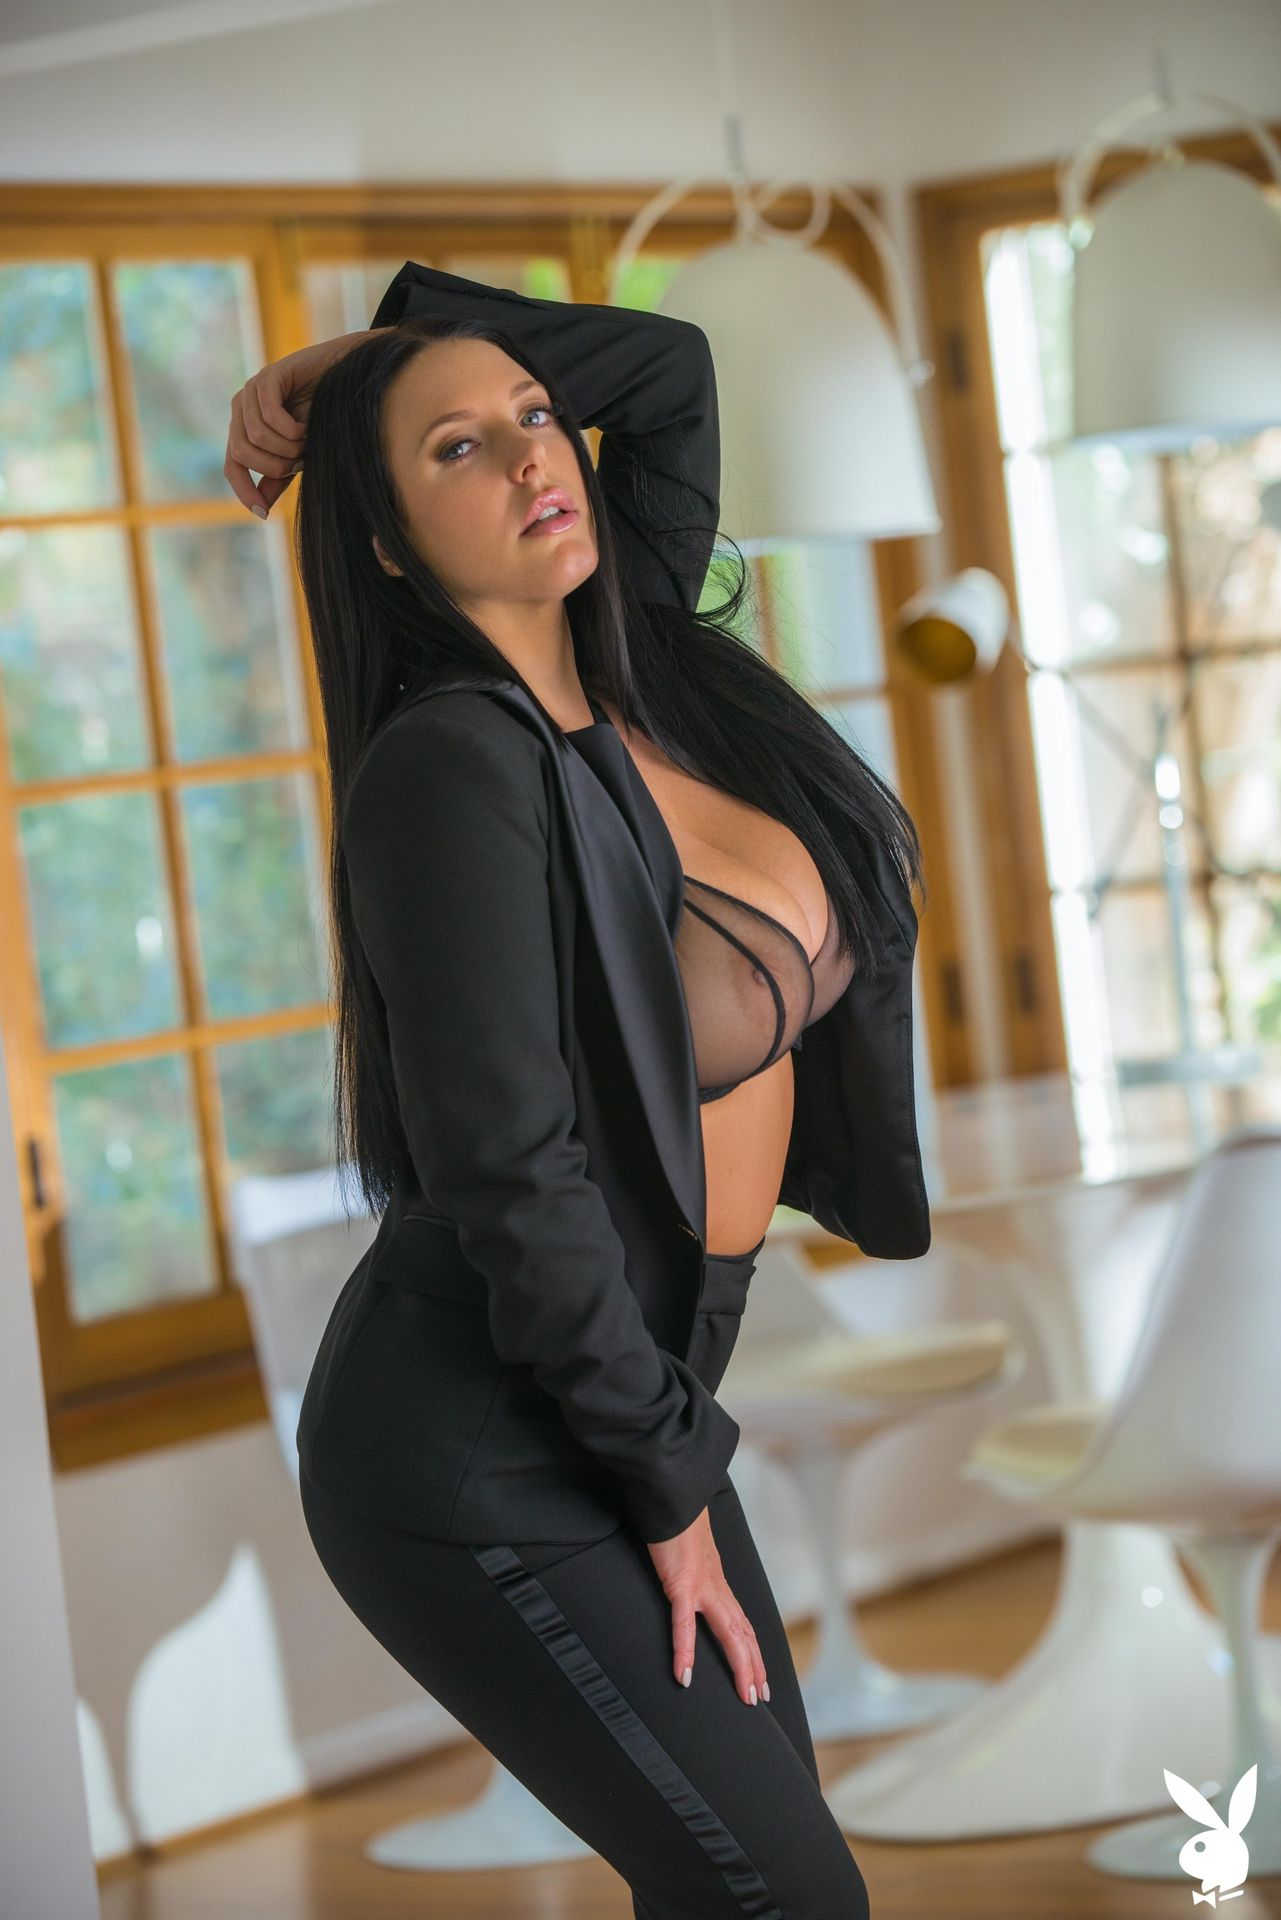 Angela White Porn Lesbian In The Beach angela white nude – professional confessions (36 photos +